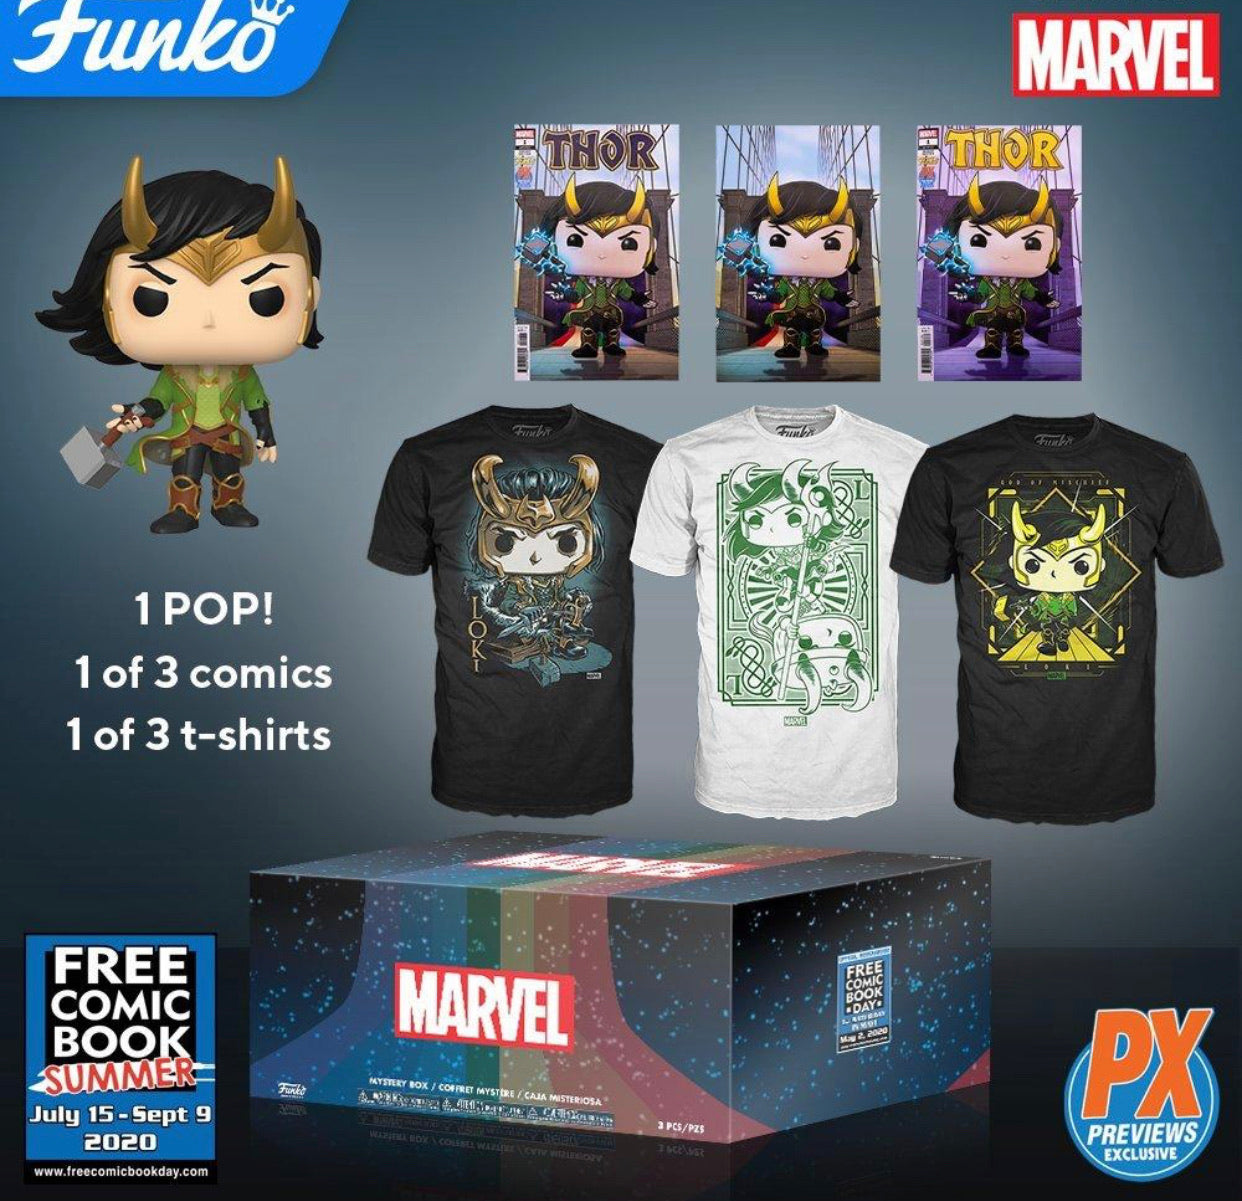 FCBD 2020 Funko PX Marvel Mystery Box(IN STOCK)